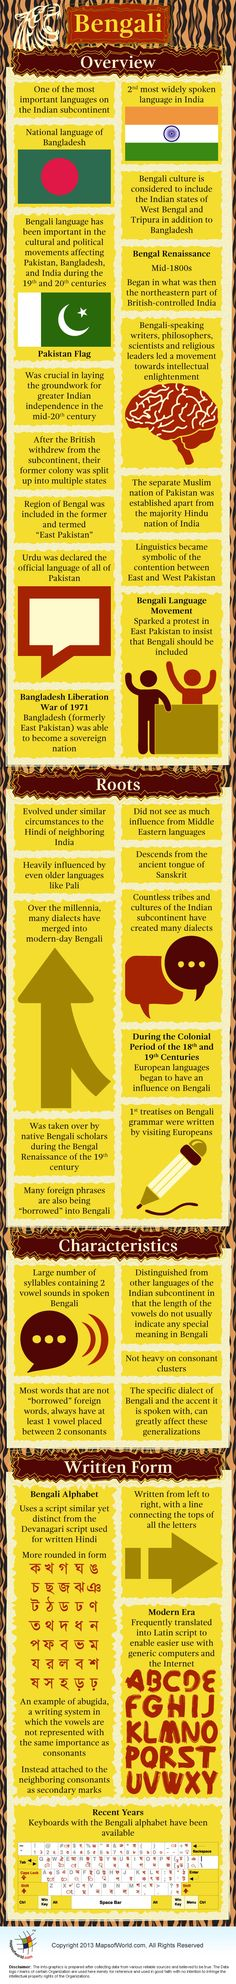 Educational infographic & data visualisation Educational infographic : Educational infographic : Bengali Language Facts & In. Bangladesh Travel, Sign Language Interpreter, Bay Of Bengal, Indian Language, World Languages, Thinking Day, Data Visualization, Asia Travel, Fun Facts